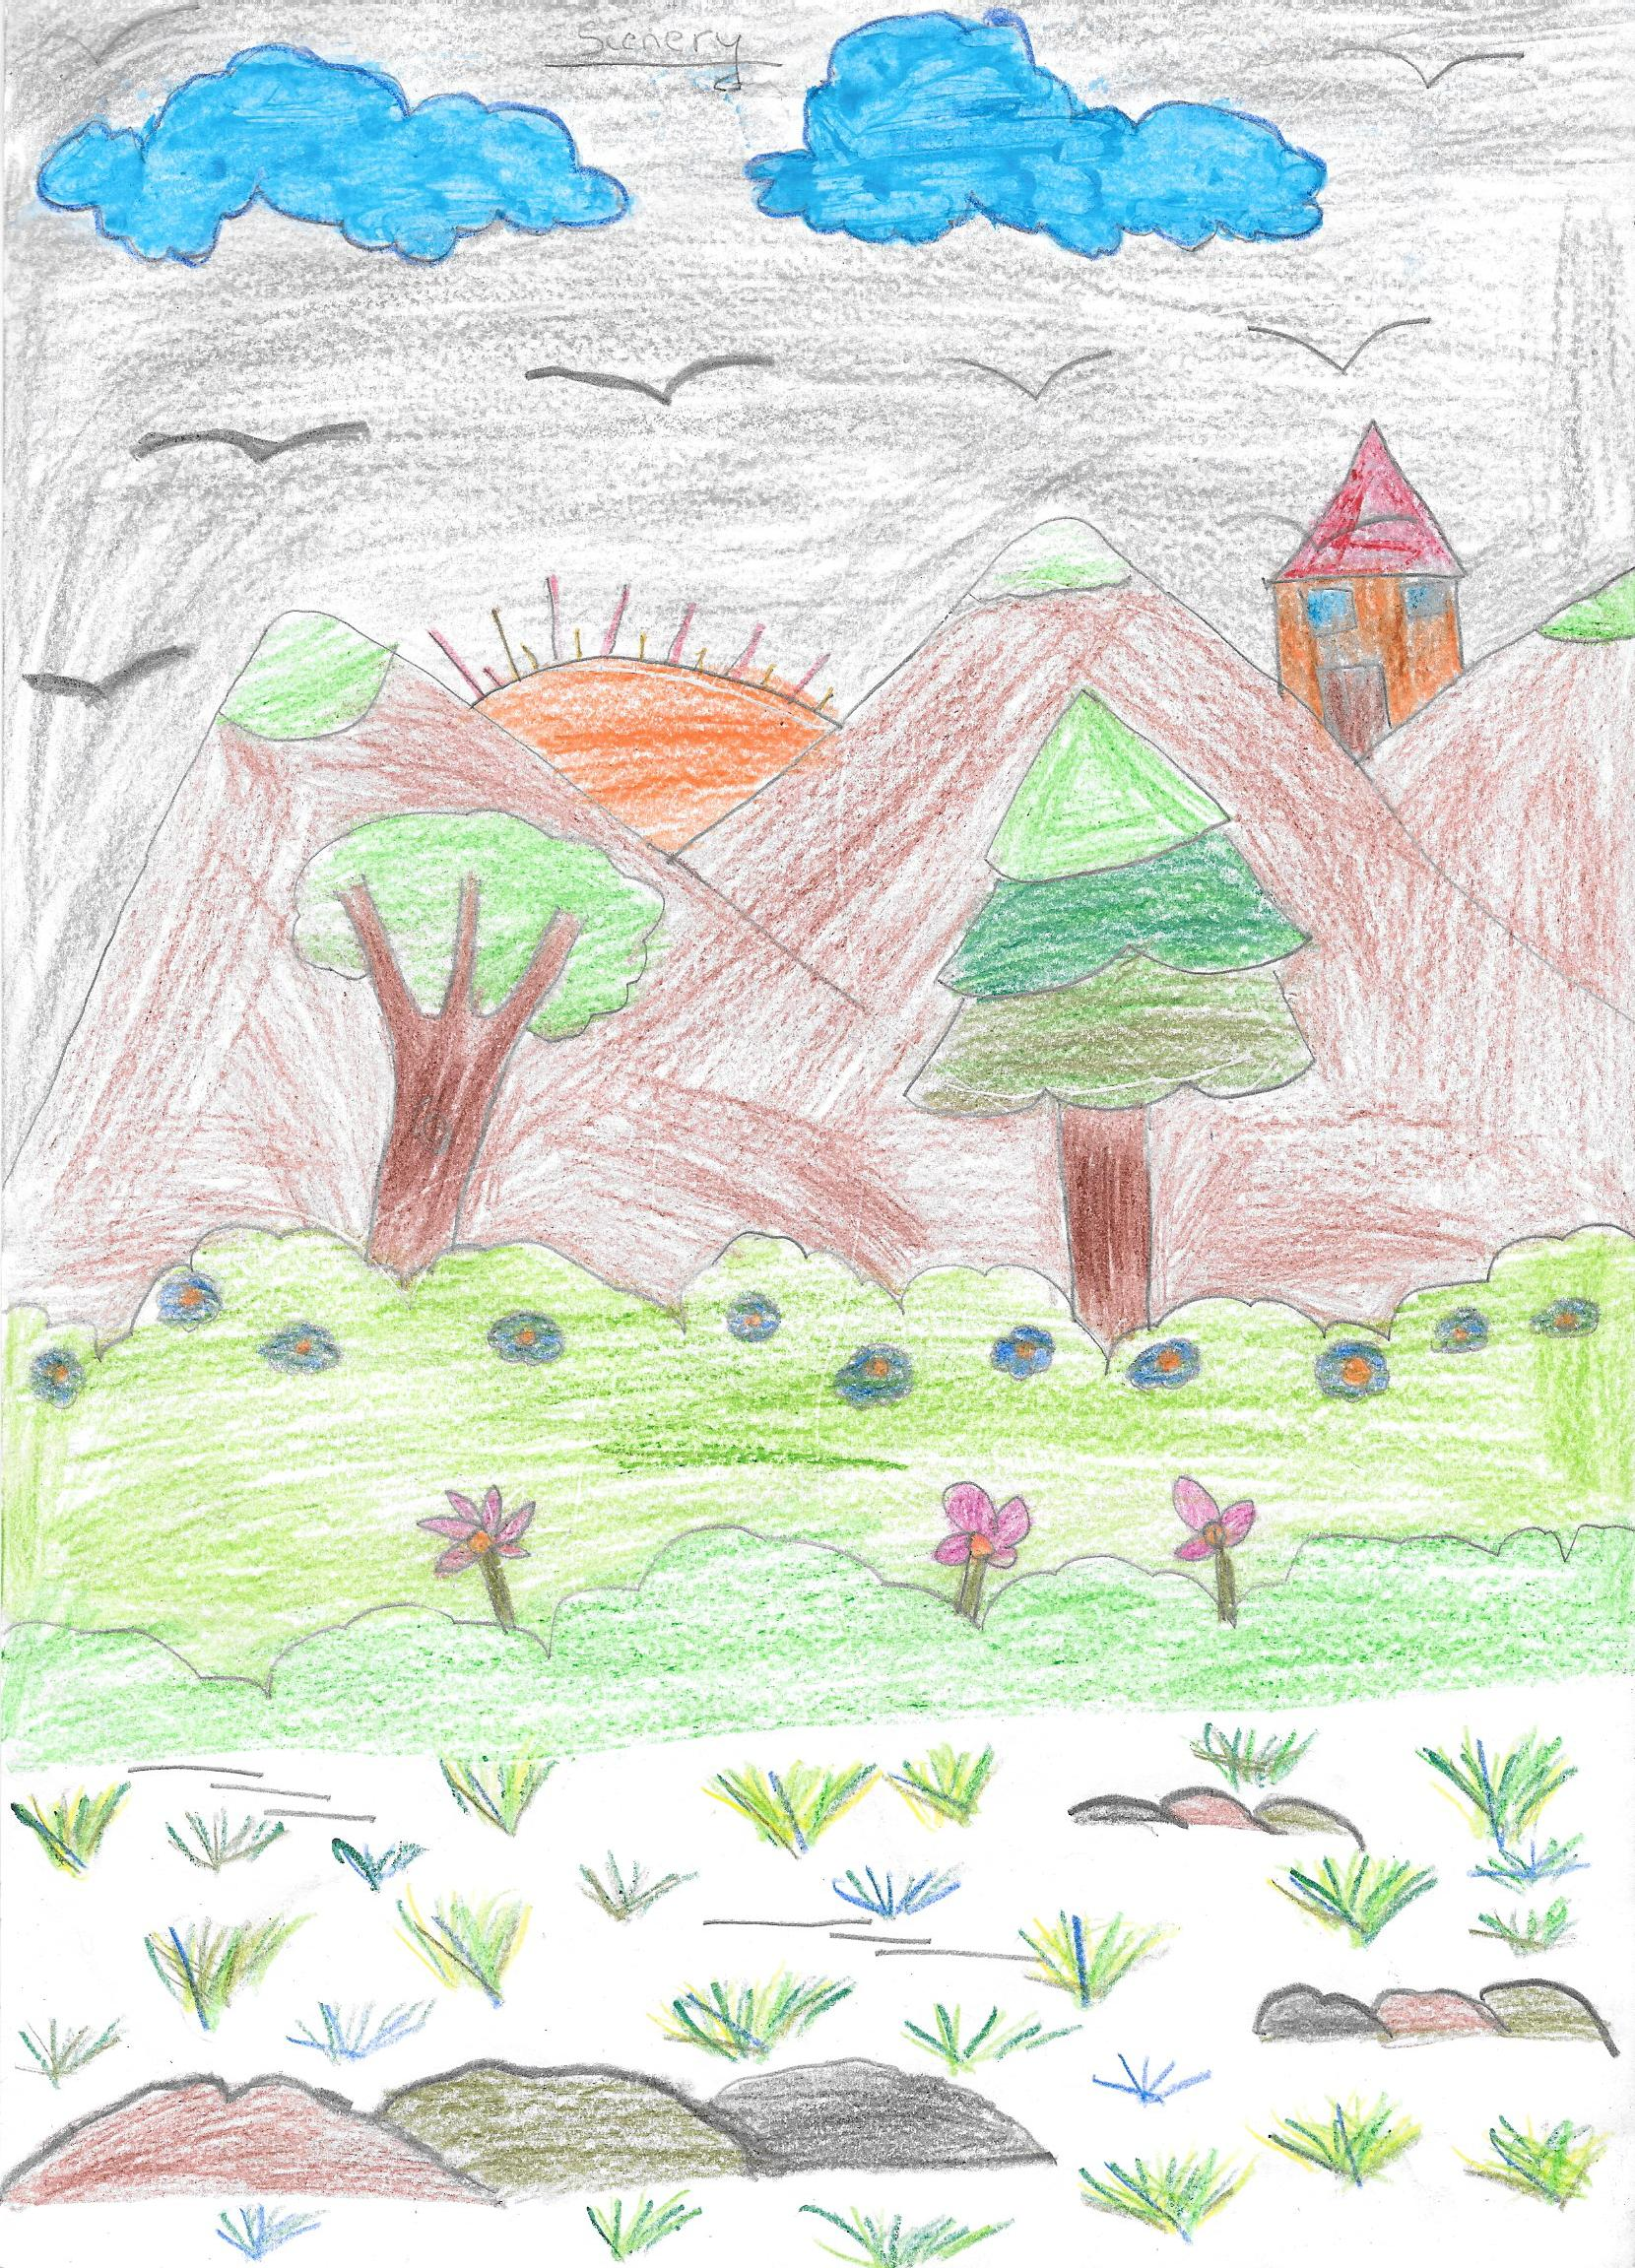 Drawn scenic hand drawn Scenery made images country sketch